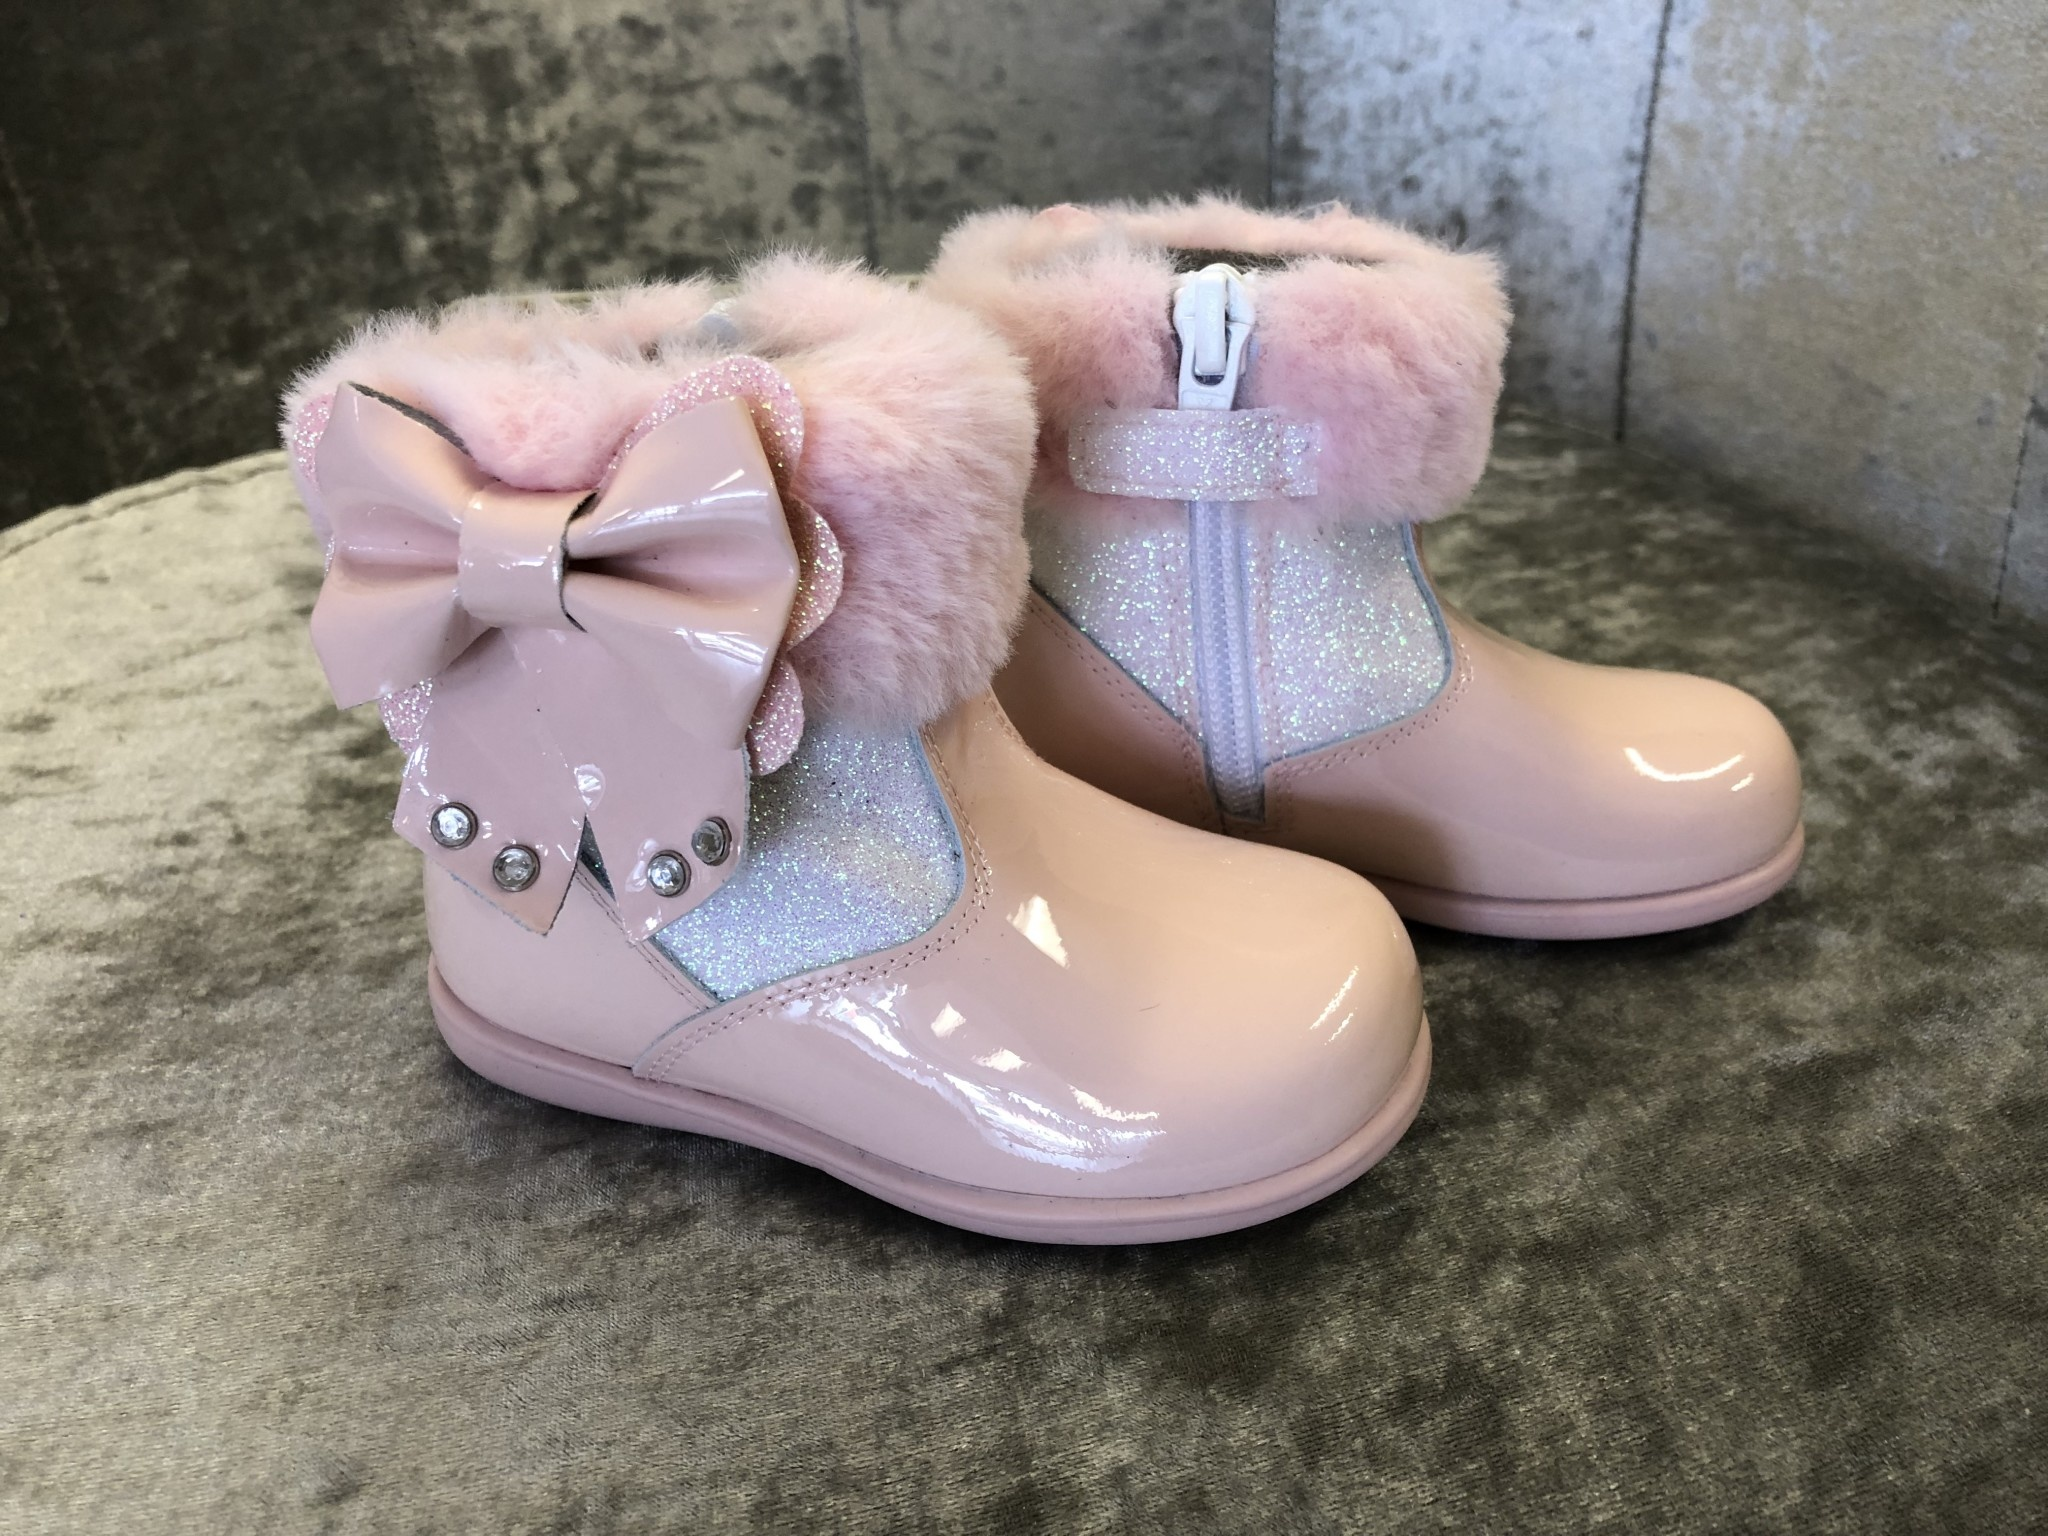 Andanines Andanines Pink Glitter Boots With Bow